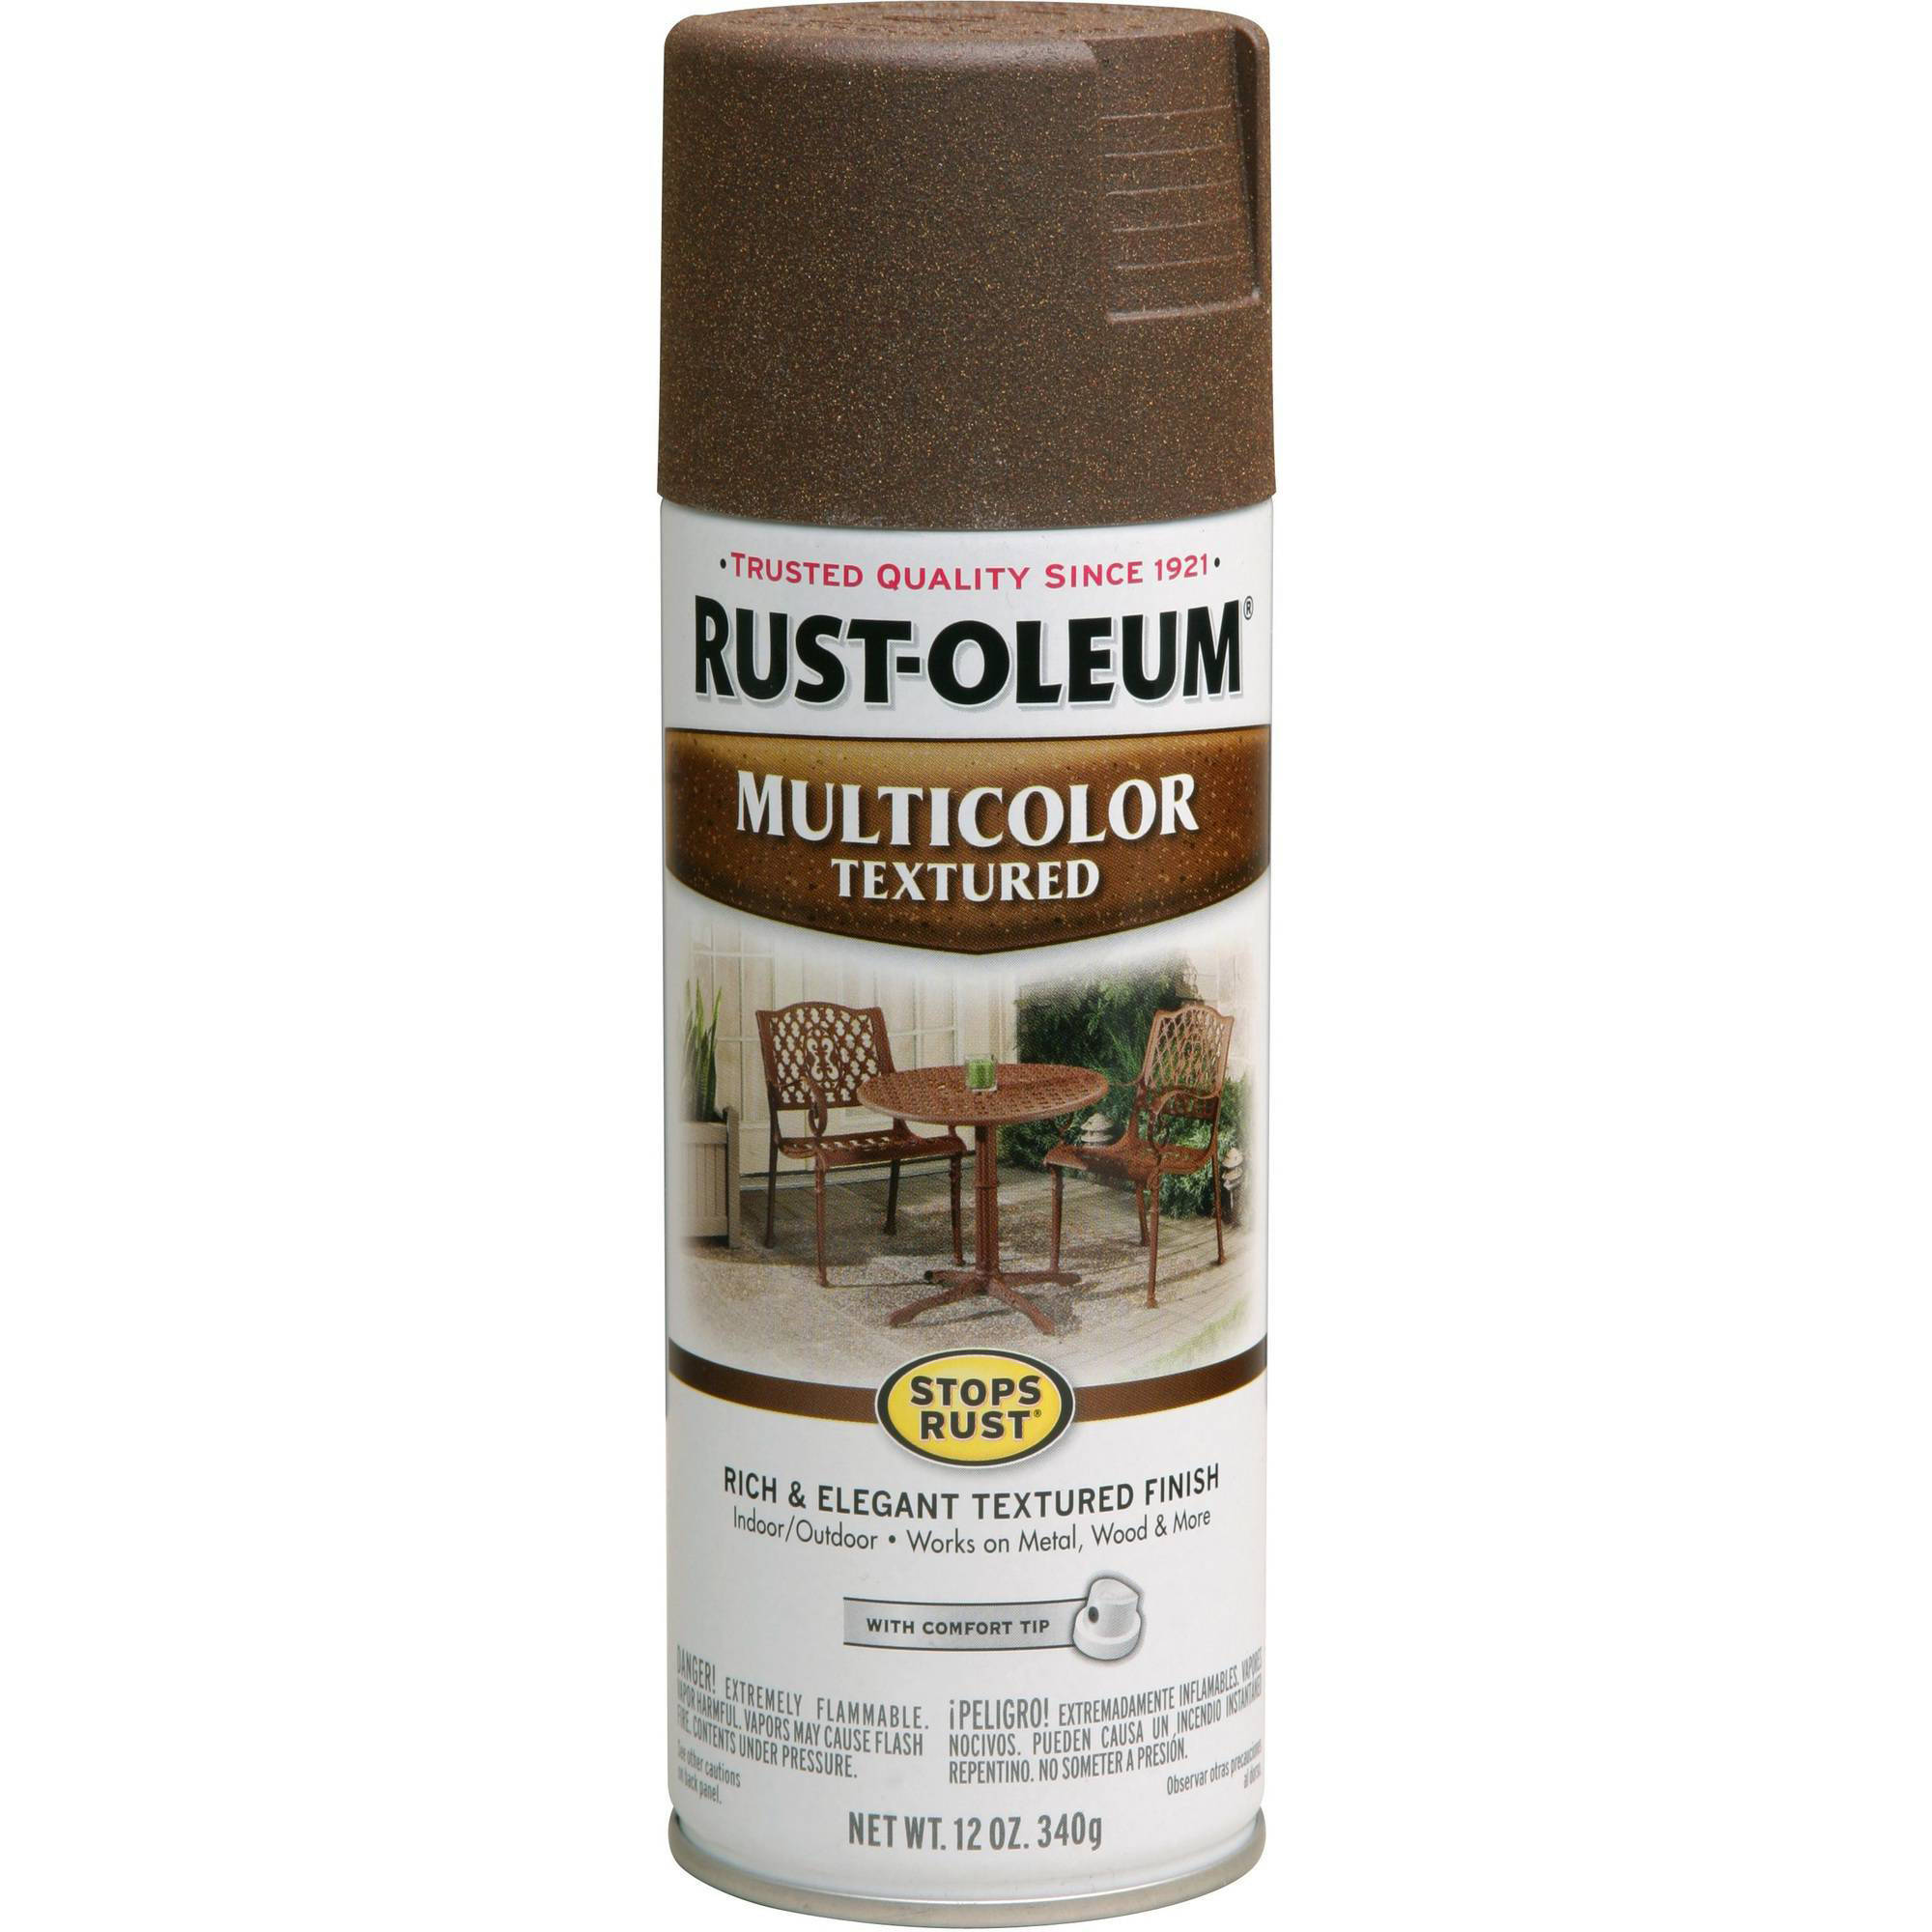 Rust Oleum Stops Rust Multicolor Textured Spray Paint